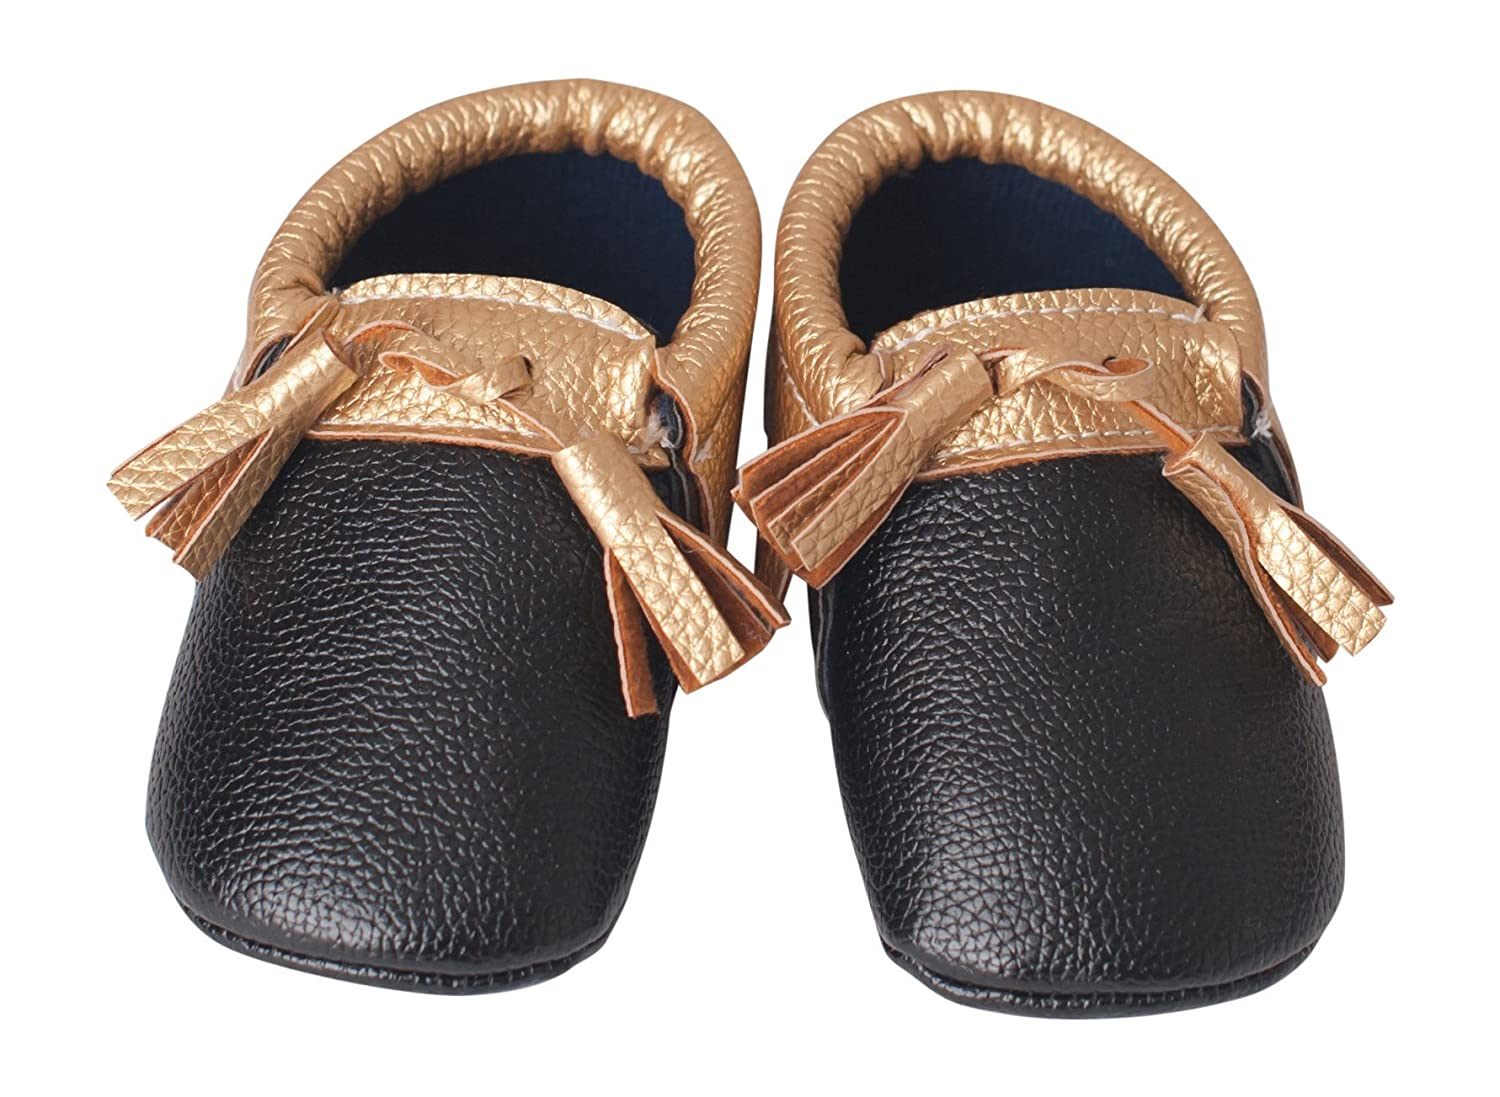 Made from Vegan Leather Material Lightweight Shoes for Baby and Toddler by Perfect Present for Baby Shower Lilac /& Lavender Tasseled Baby Moccasins with Soft Soles